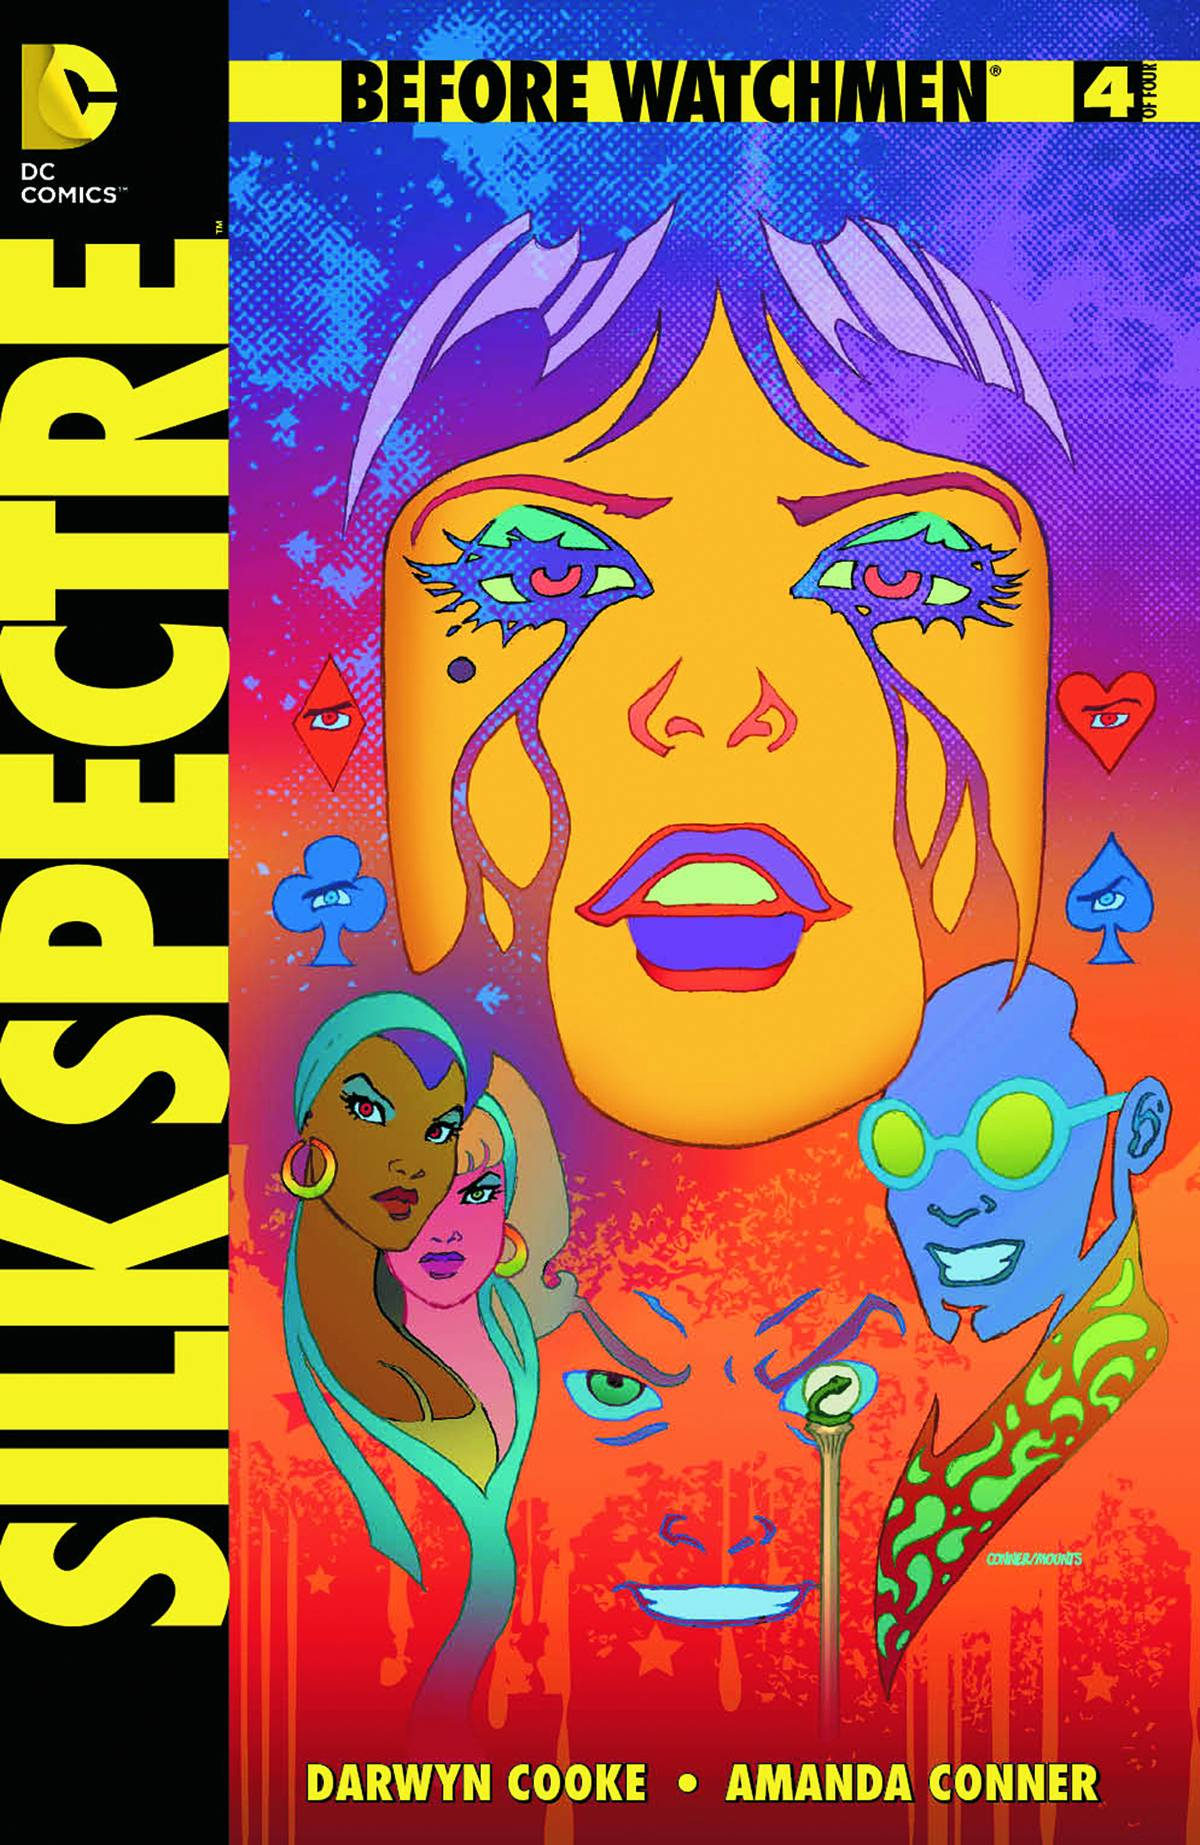 BEFORE WATCHMEN SILK SPECTRE (MS 4)